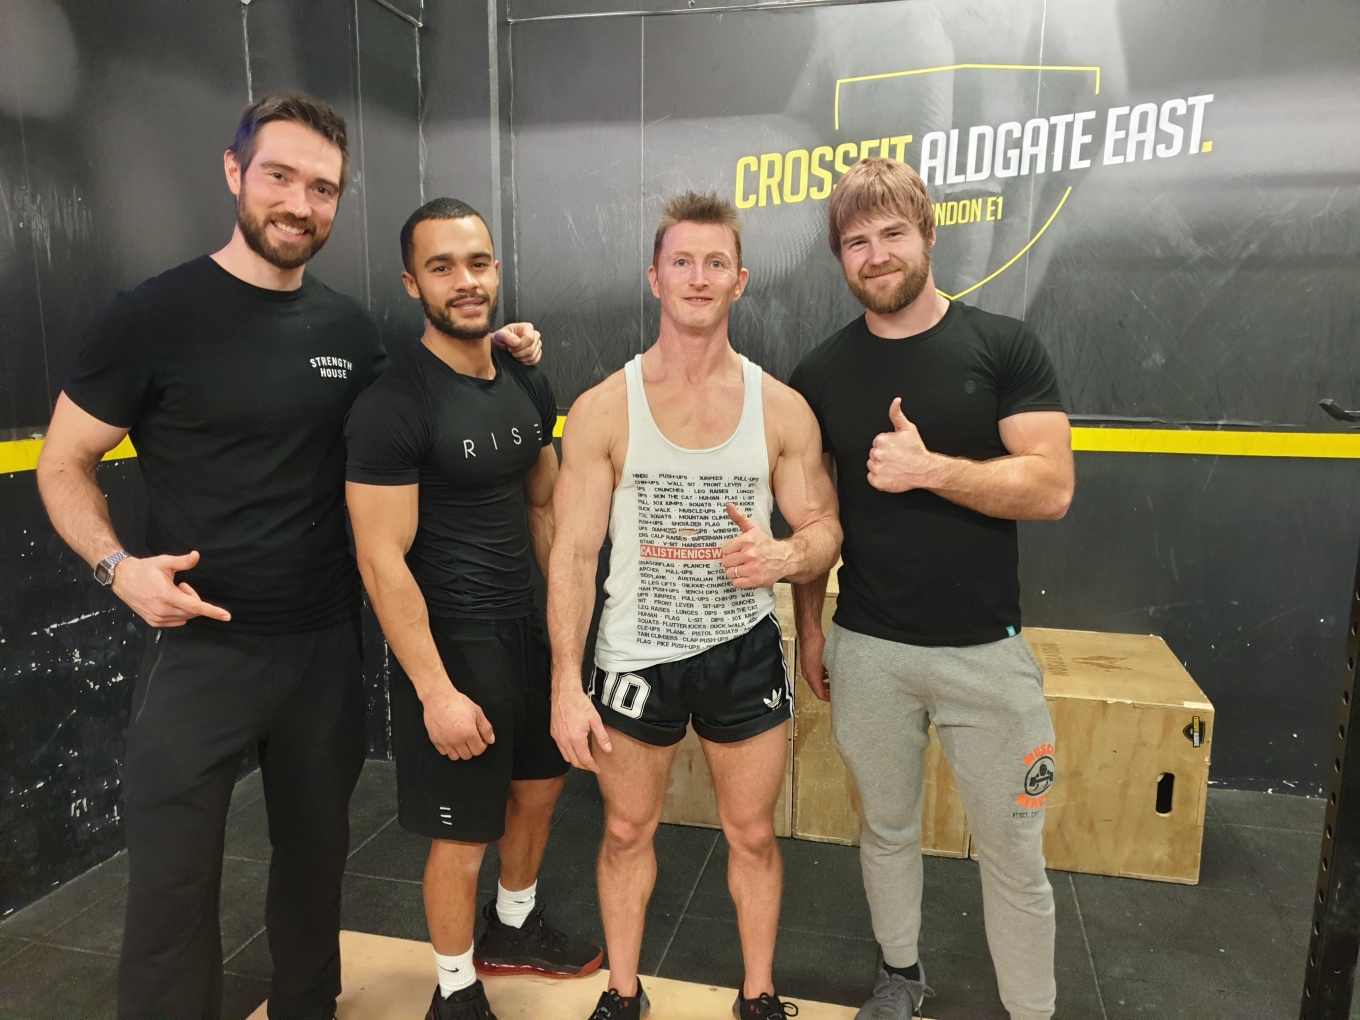 Judges Crossfit Aldgate December 2019